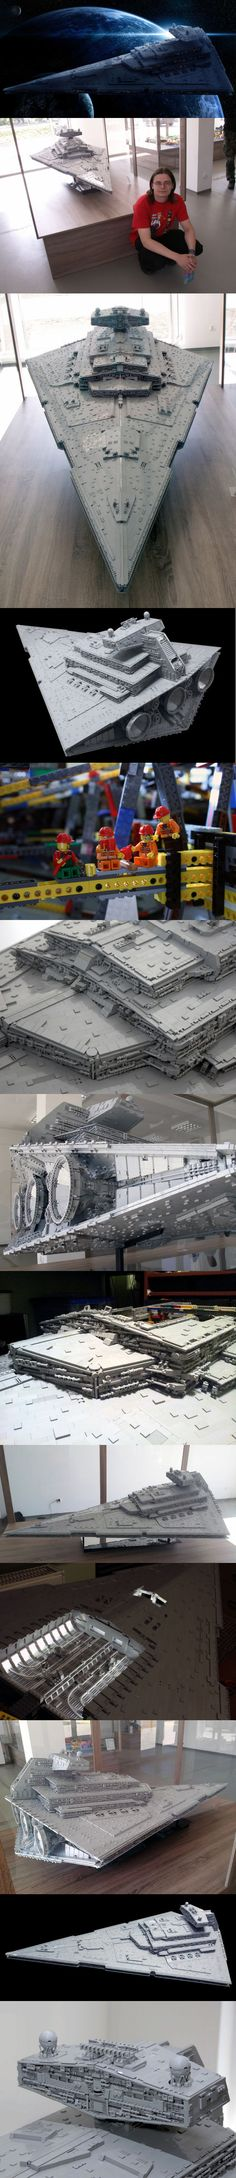 -The biggest, most accurate Lego Imperial Star Destroyer ever built More than 40,000 bricks. 110 pounds (50 kilograms). 6.62 feet long (2.02 meters). 4.1 feet wide (1.25 meters). 1.9 feet tall (58 centimeters). Eight months of design and building. Those are the stats for the biggest, most accurate Lego Imperial Star Destroyer ever built.-